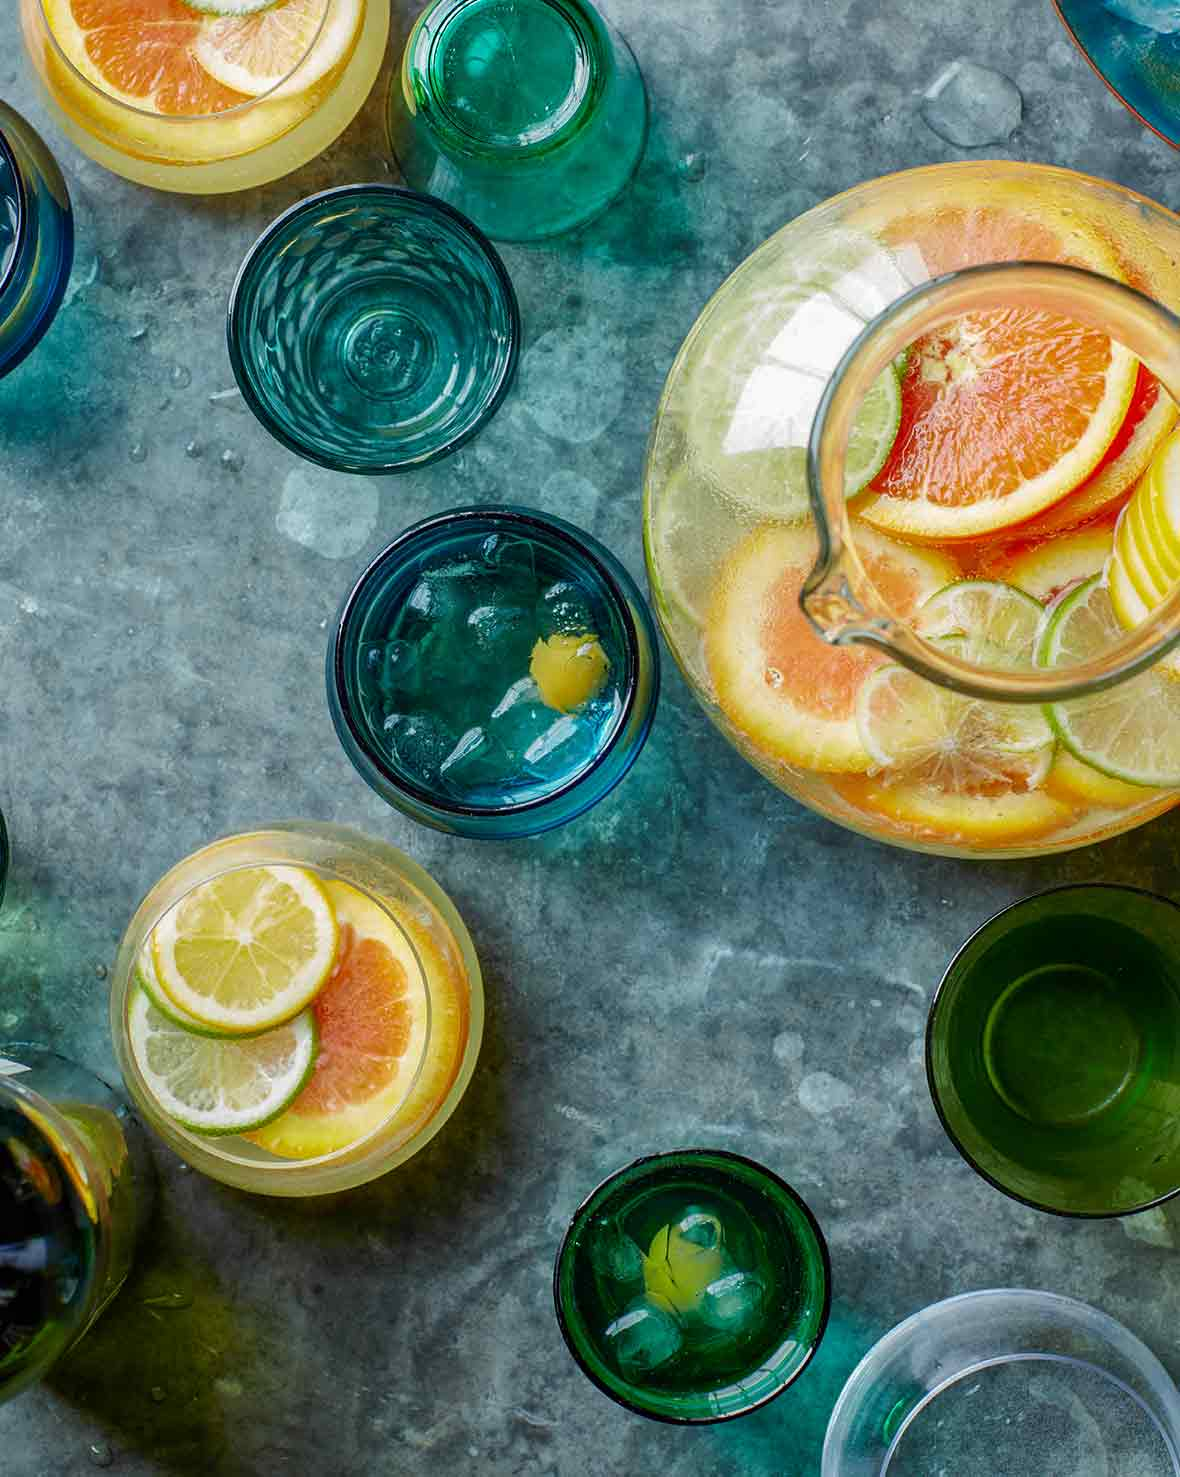 A pitcher and glasses of white sangria spritzer, filled with slices of lemons and oranges